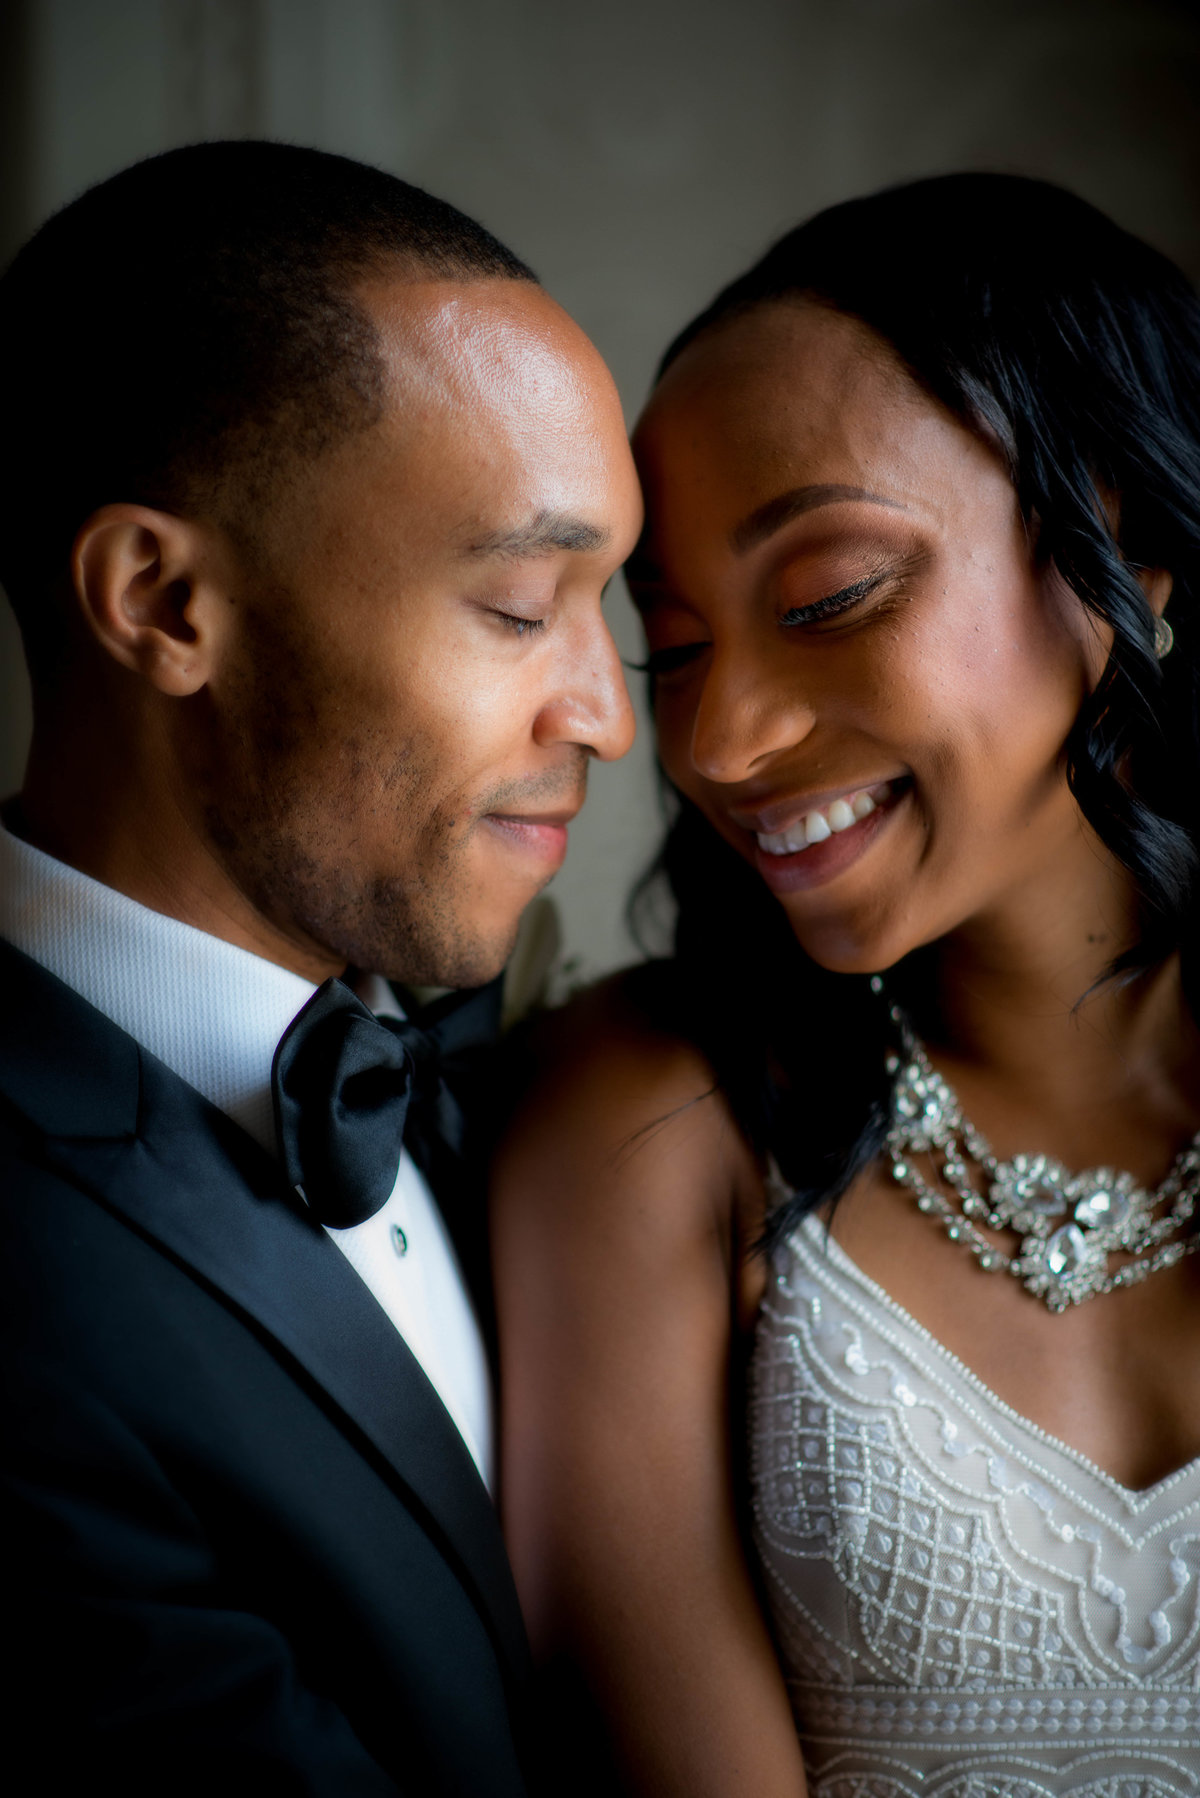 Hotel Monaco Wedding by Washington Dc Wedding Photographer, Erin Tetteton Photography